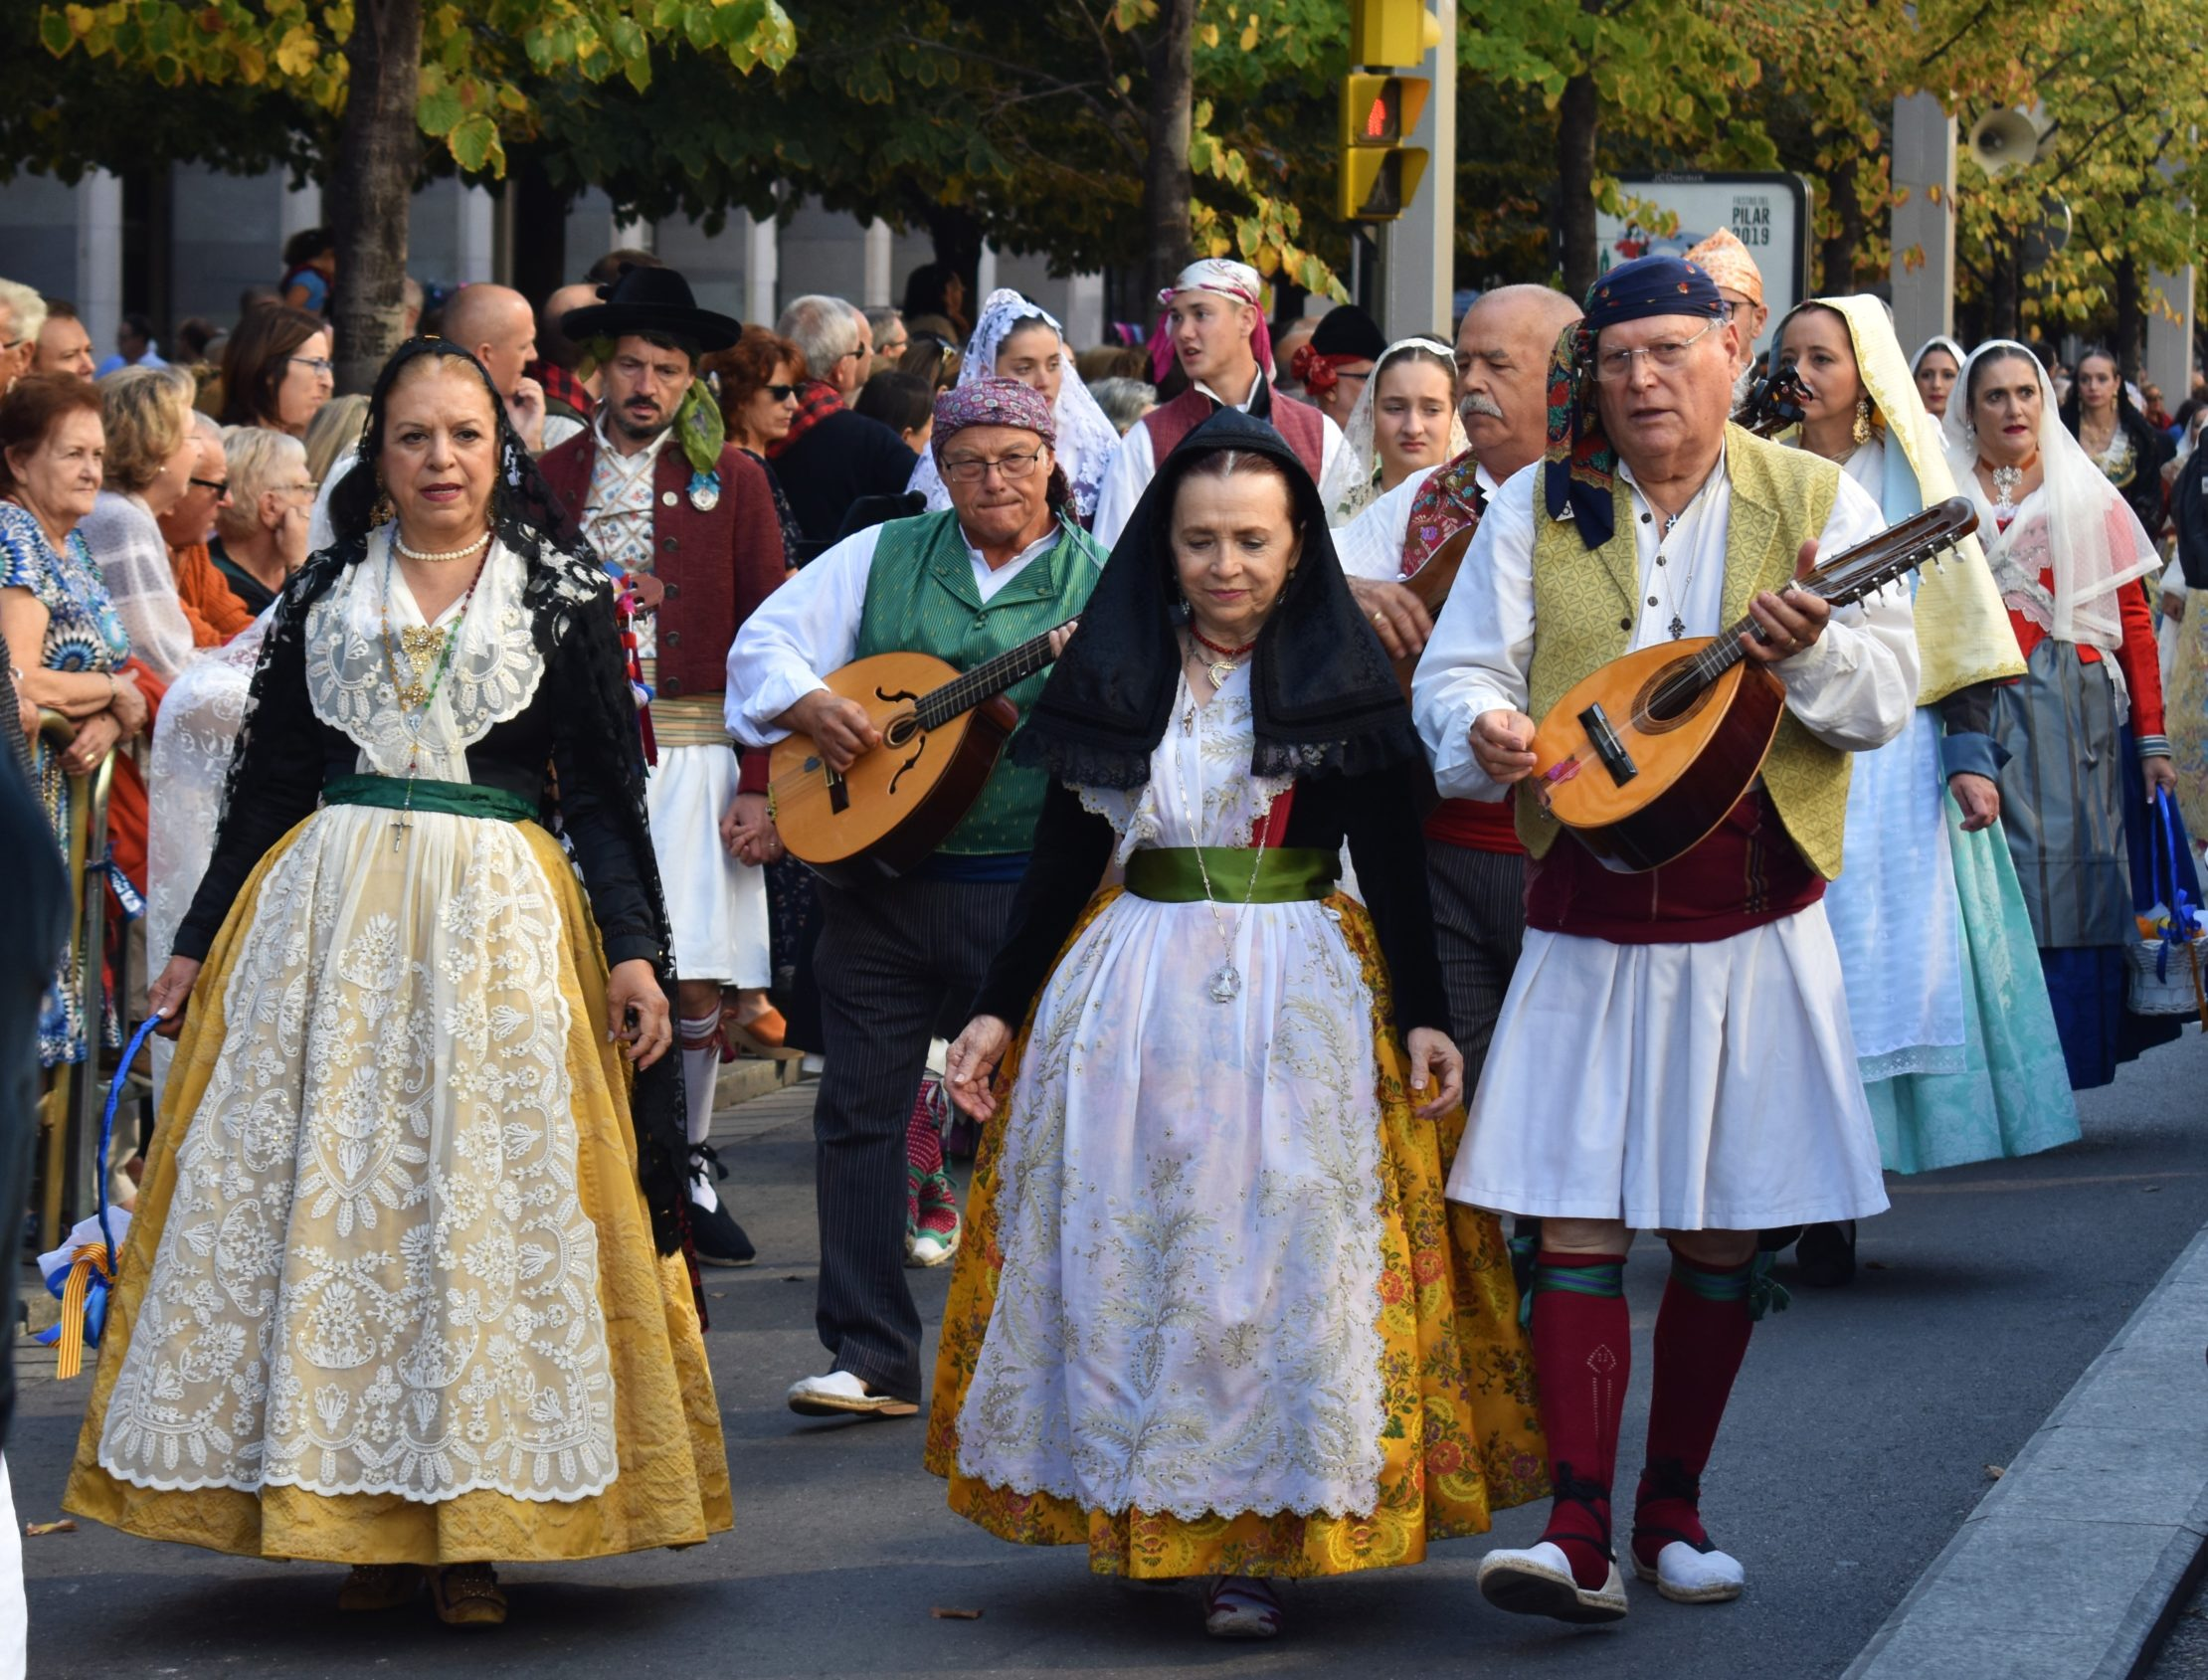 During Fiestas del Pilar in Zaragoza the streets are filled with people wearing traditional costumes of their towns and villages